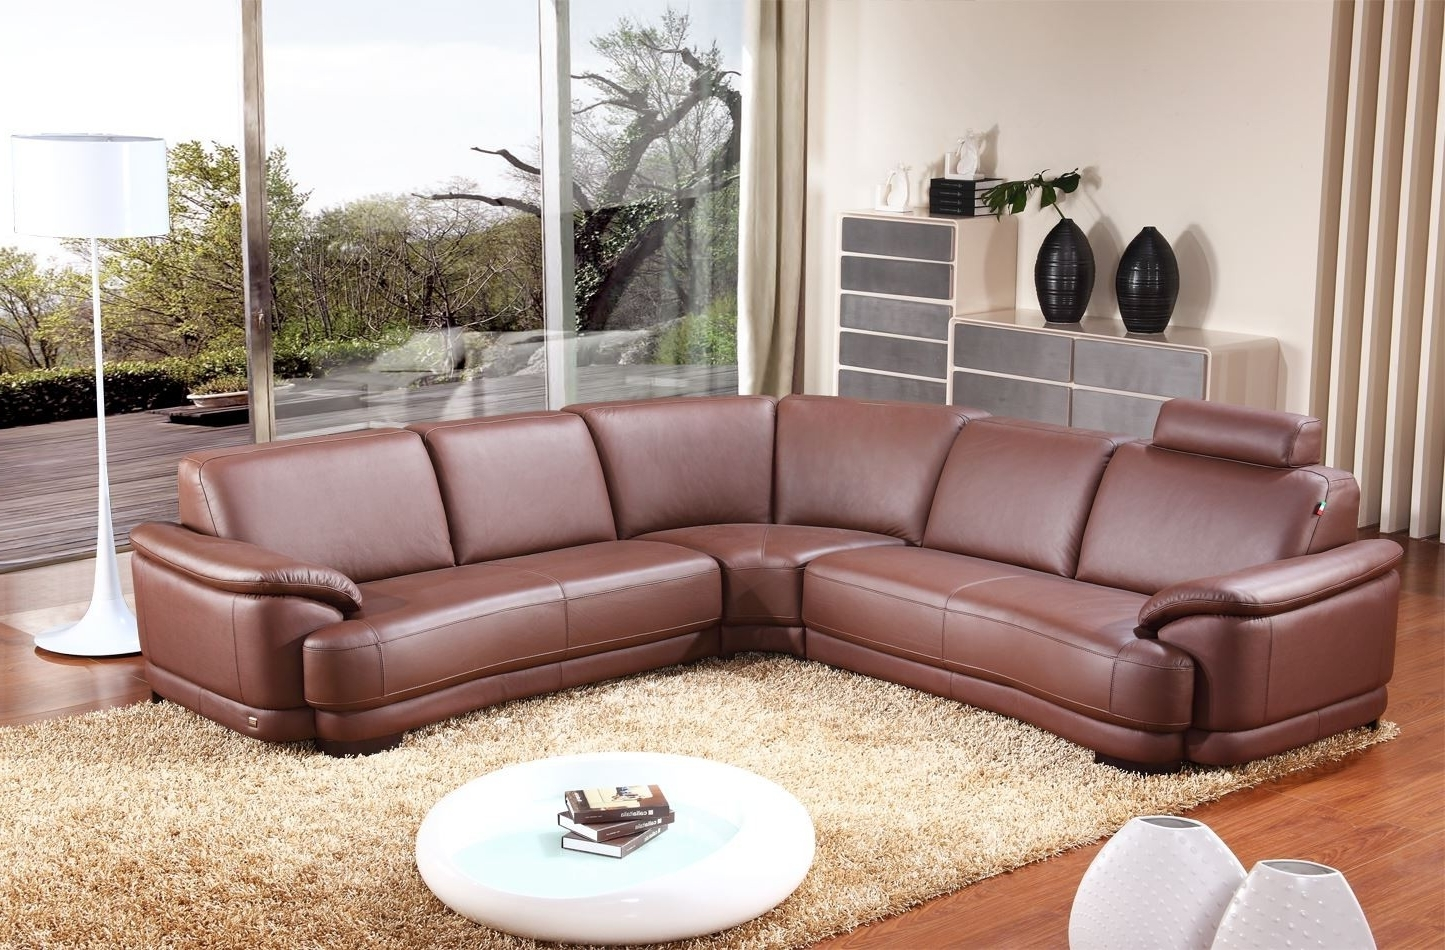 Leather Corner Sofas With Regard To Well Known Corner Sofas In Leather 27 With Corner Sofas In Leather (View 7 of 15)